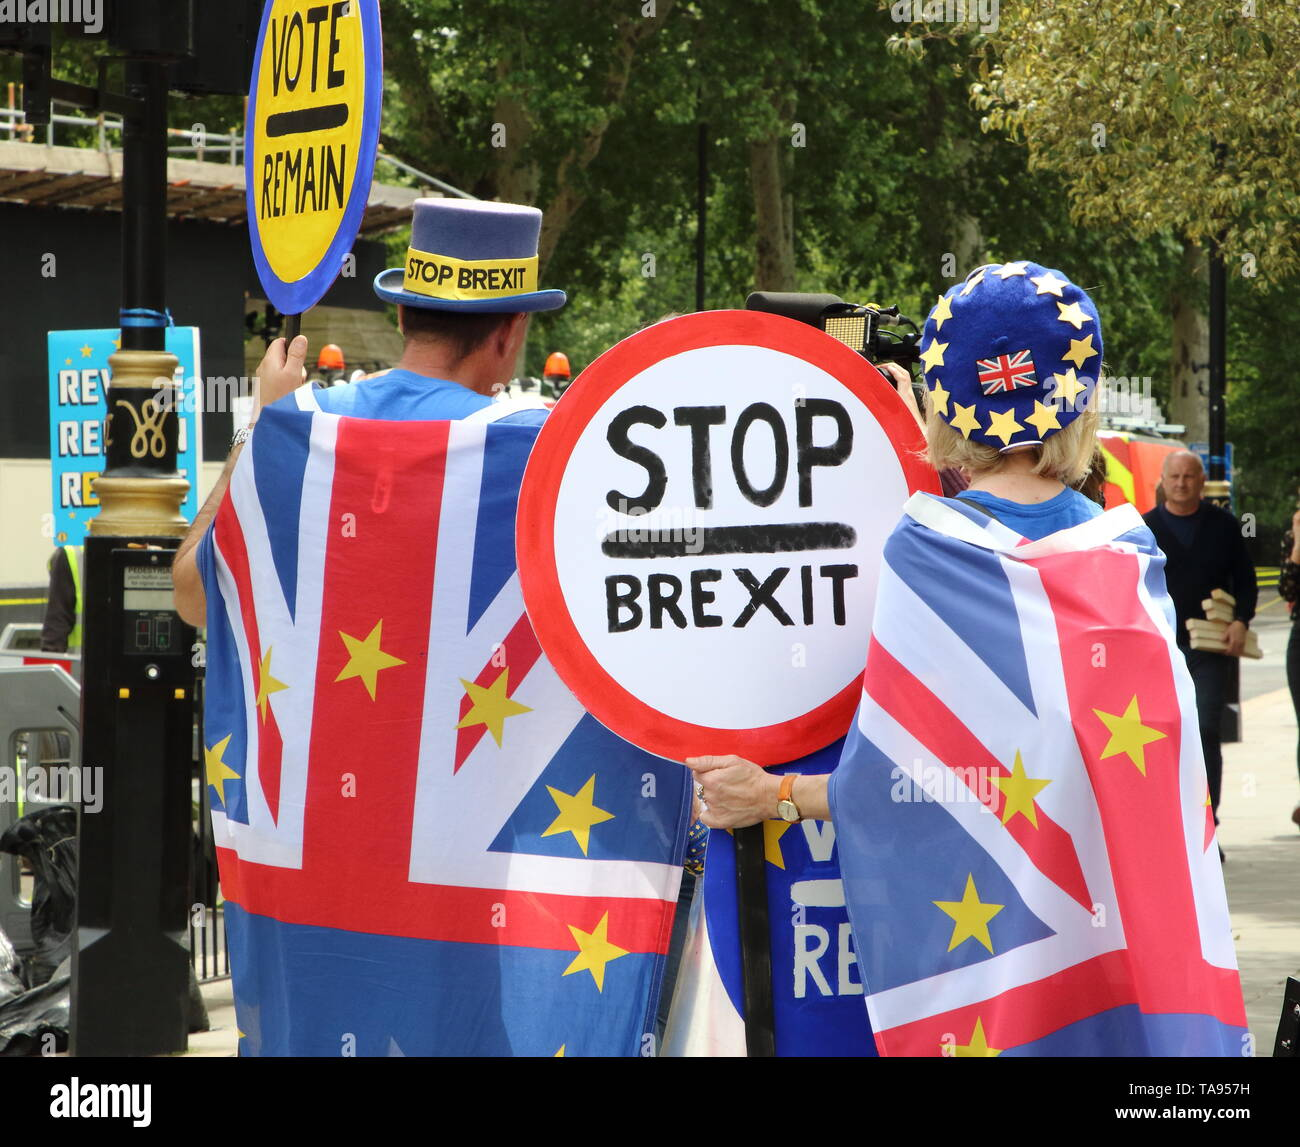 Anti-Brexit protesters seen holding European Union Flags and placard outside the Houses of Parliament in Westminster, London on the eve of the European Parliament elections. - Stock Image